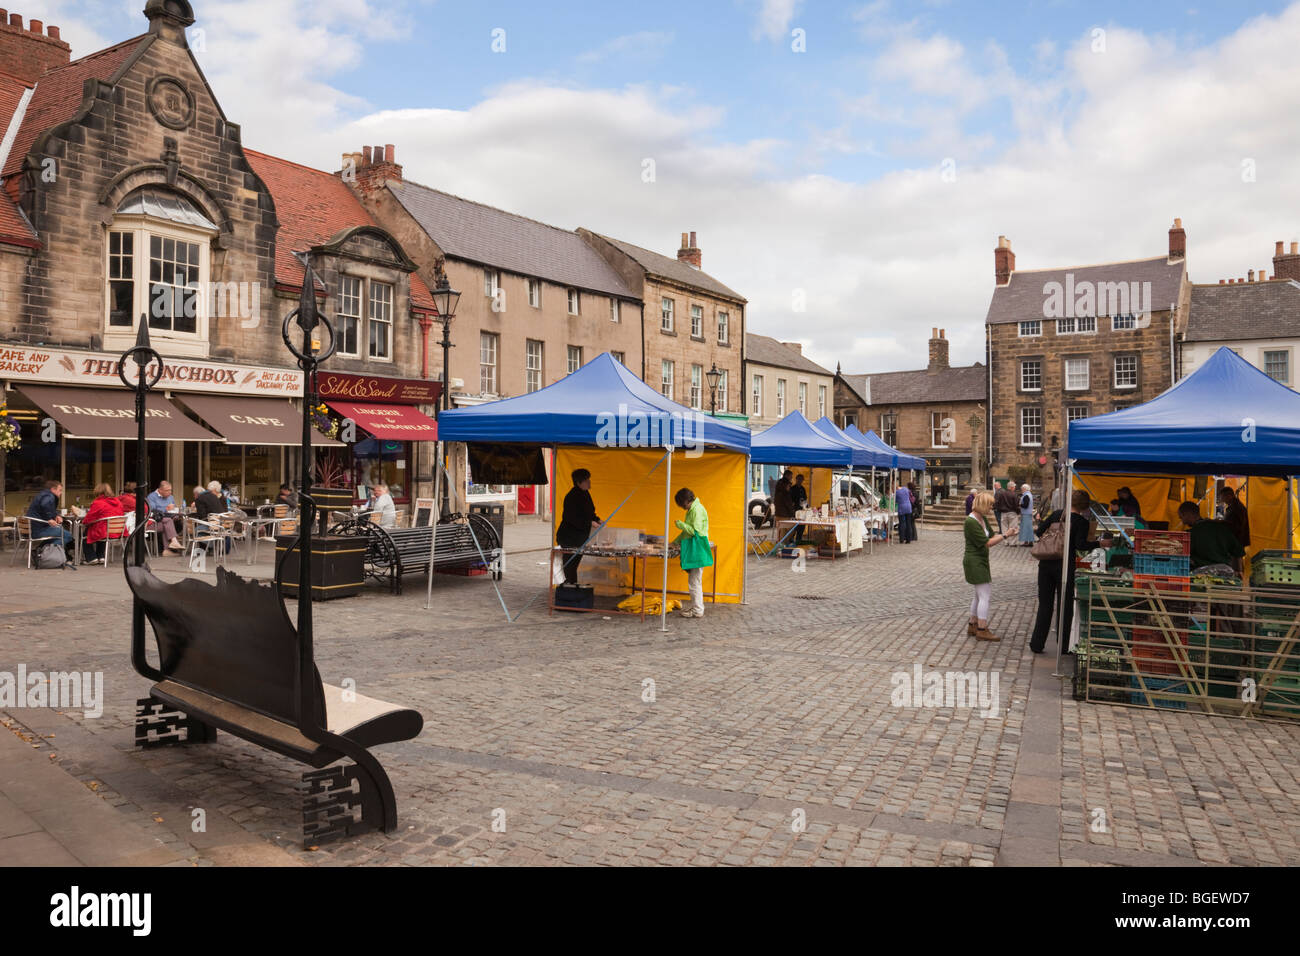 Local farmers market in town square. Market Place, Alnwick, Northumberland, England, UK, Britain. - Stock Image